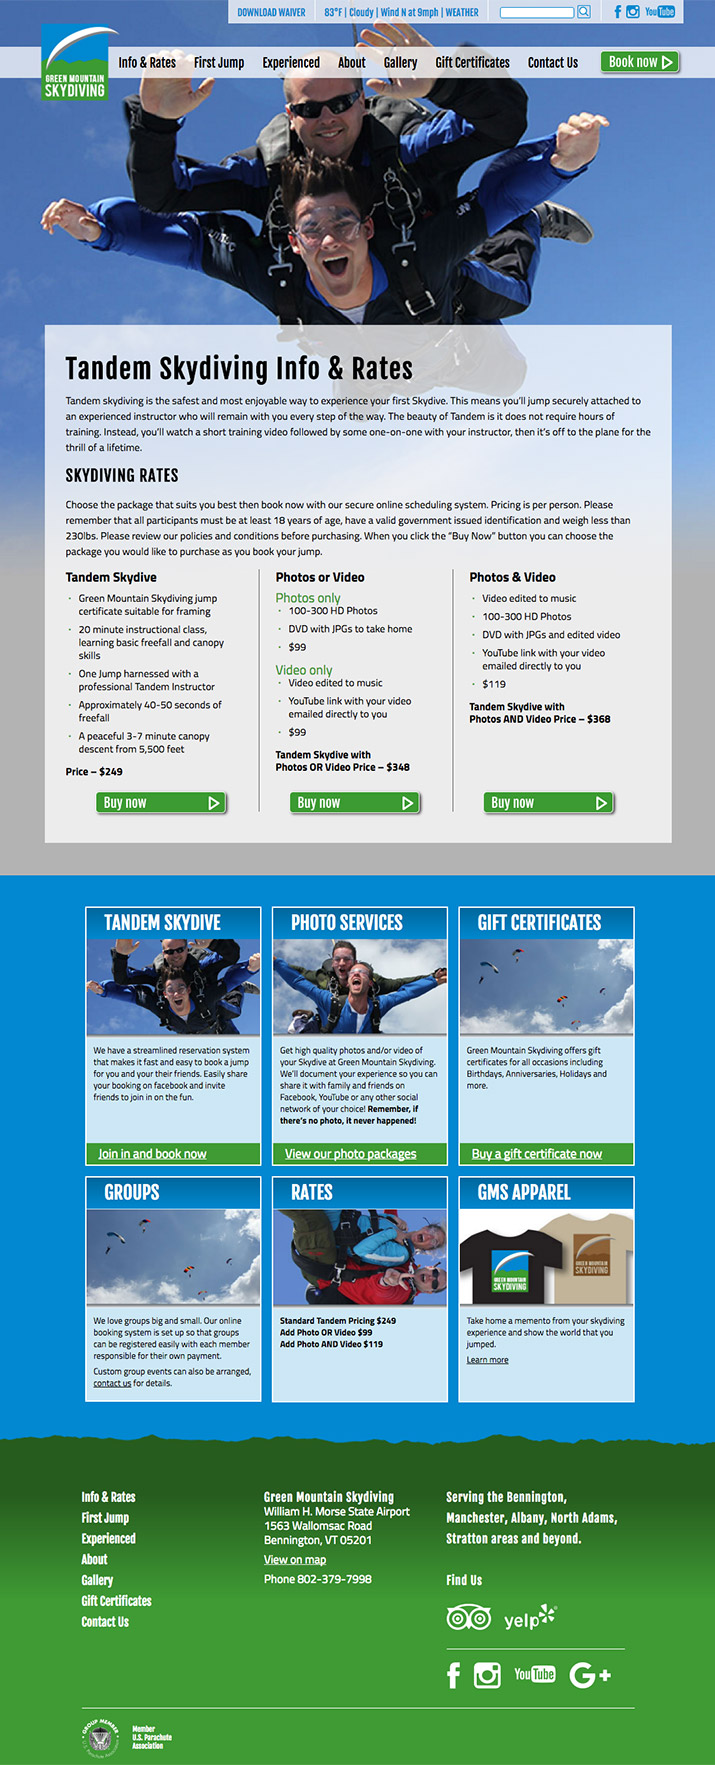 Green Mountain Skydiving – Graphic Design: Interactive, Print